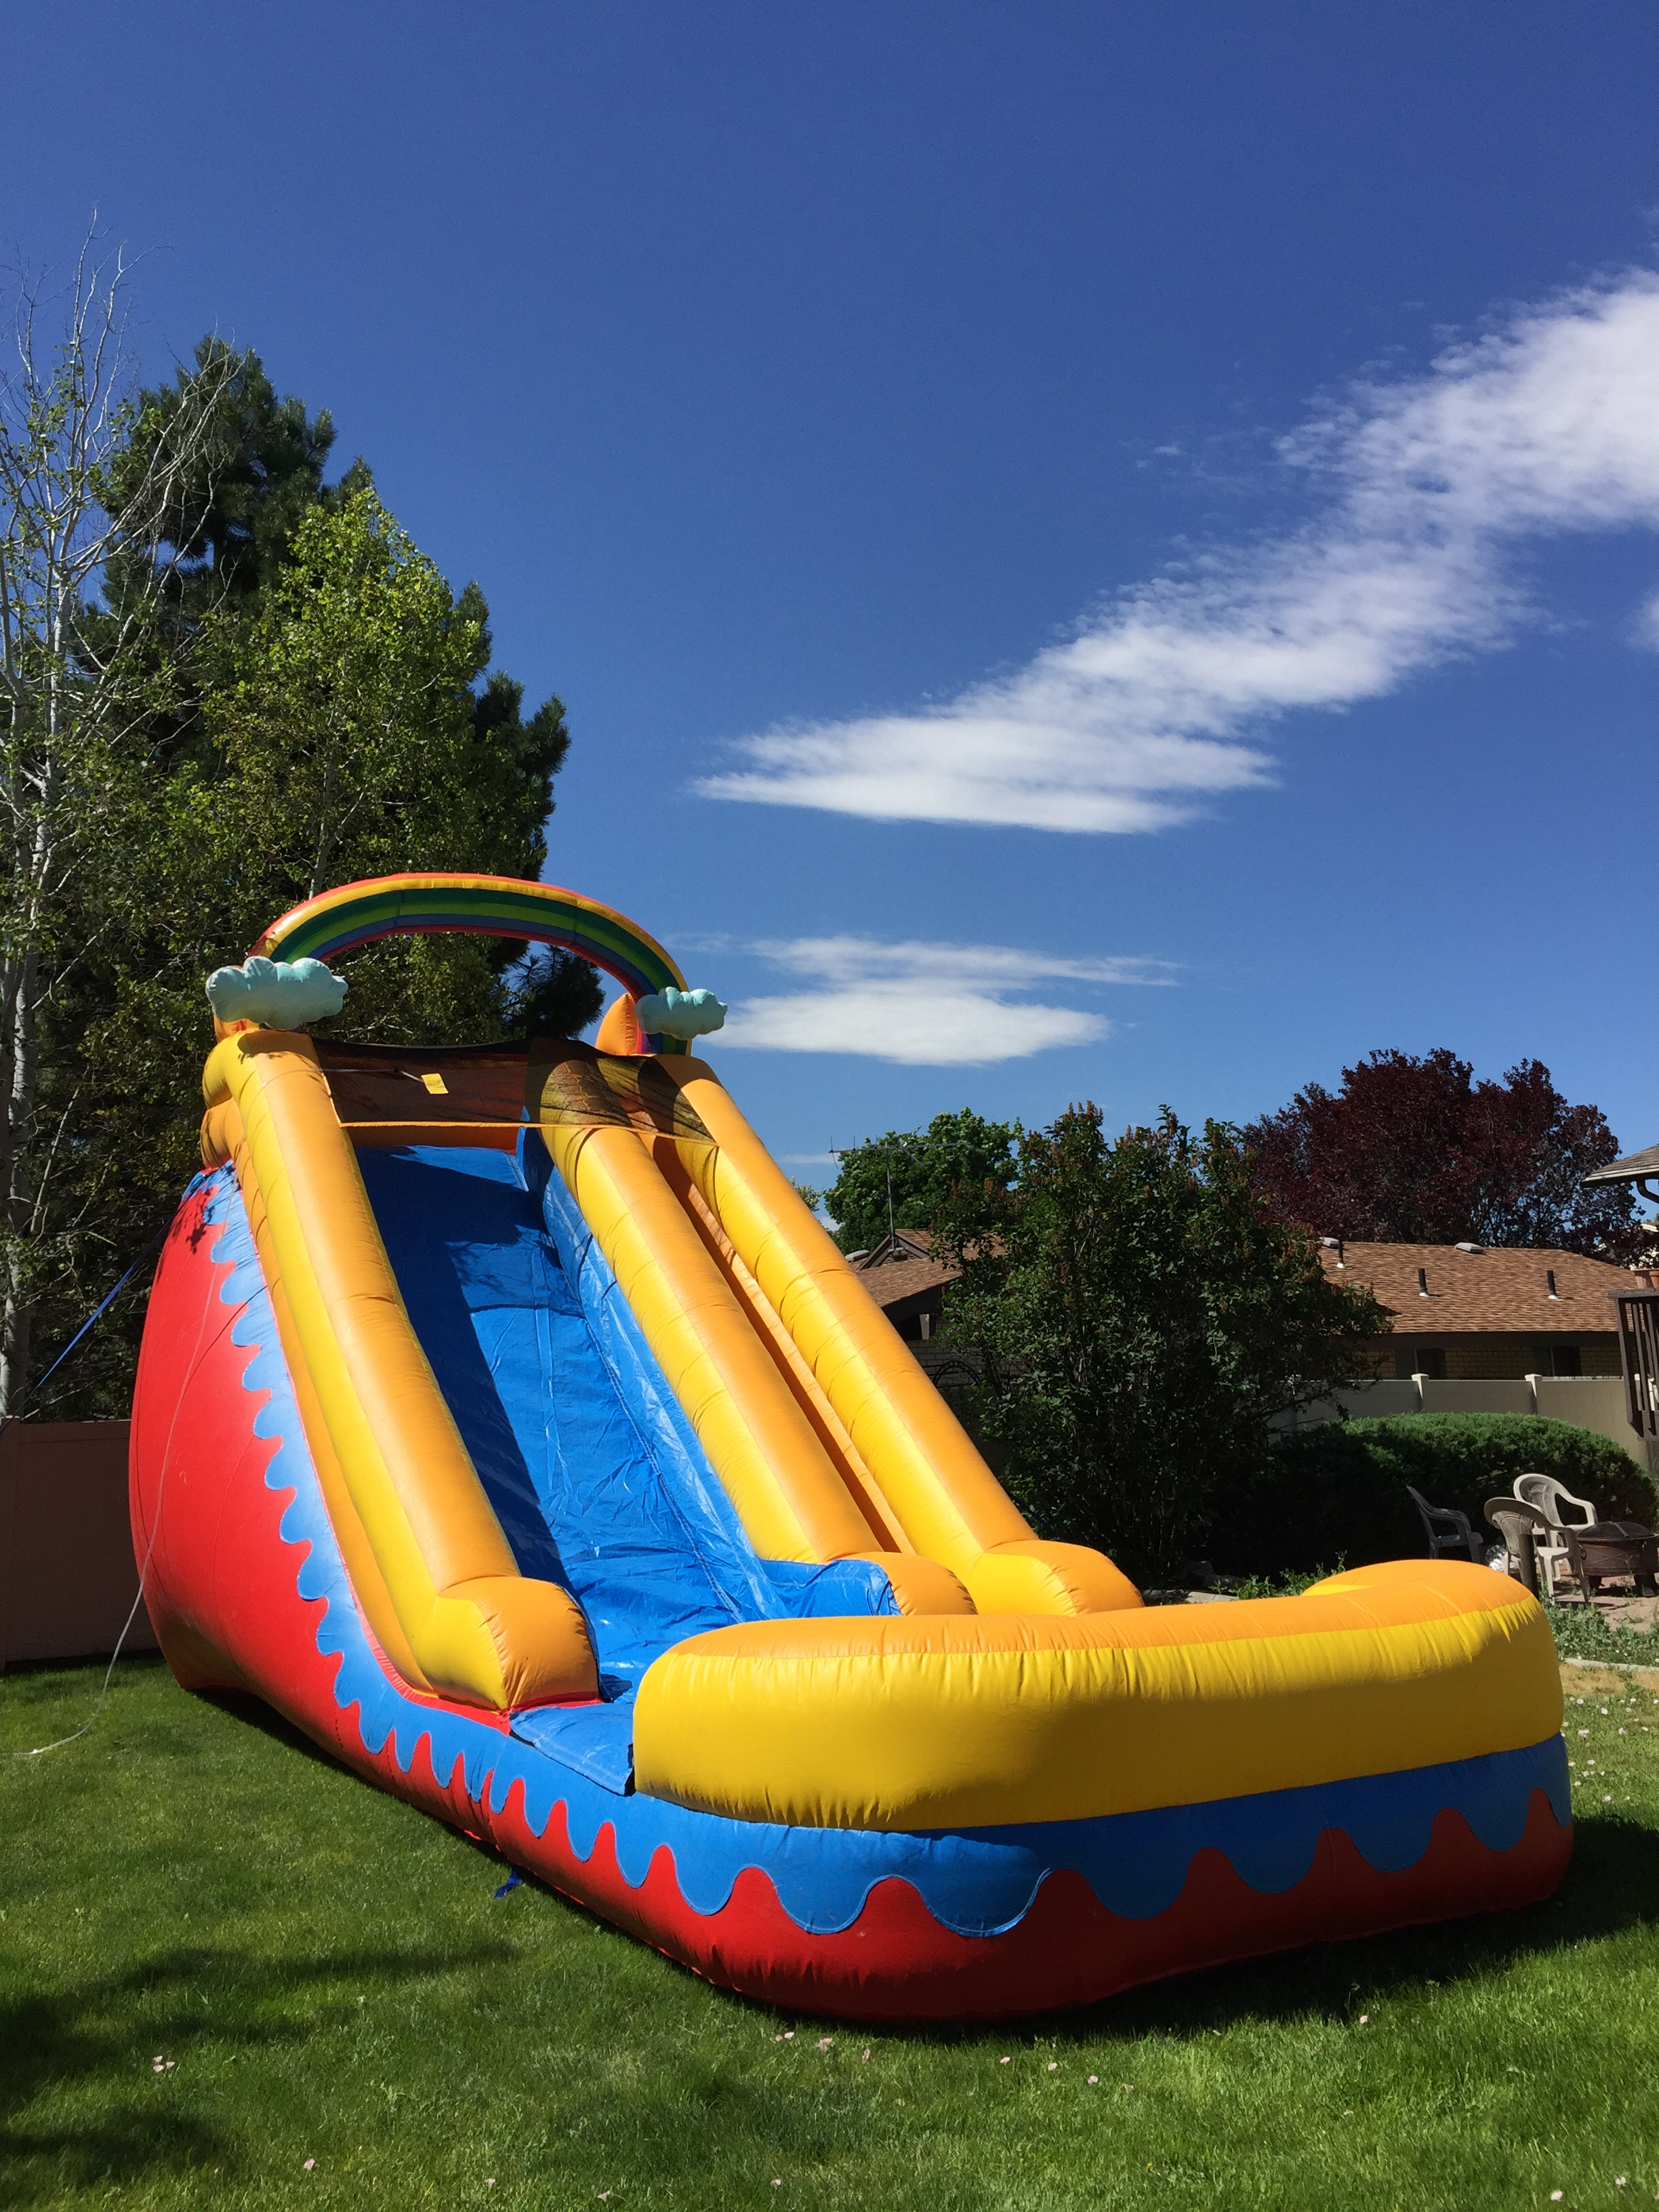 Inflatable Bounce House Water Slide Rentals Utah Bounce House Combo Slide Rental Utah Waterslide Water Slide Inflatable Huge Salt Lake City West Valley City Tooele Stansbury Park Grantsville Draper Herriman Bountiful